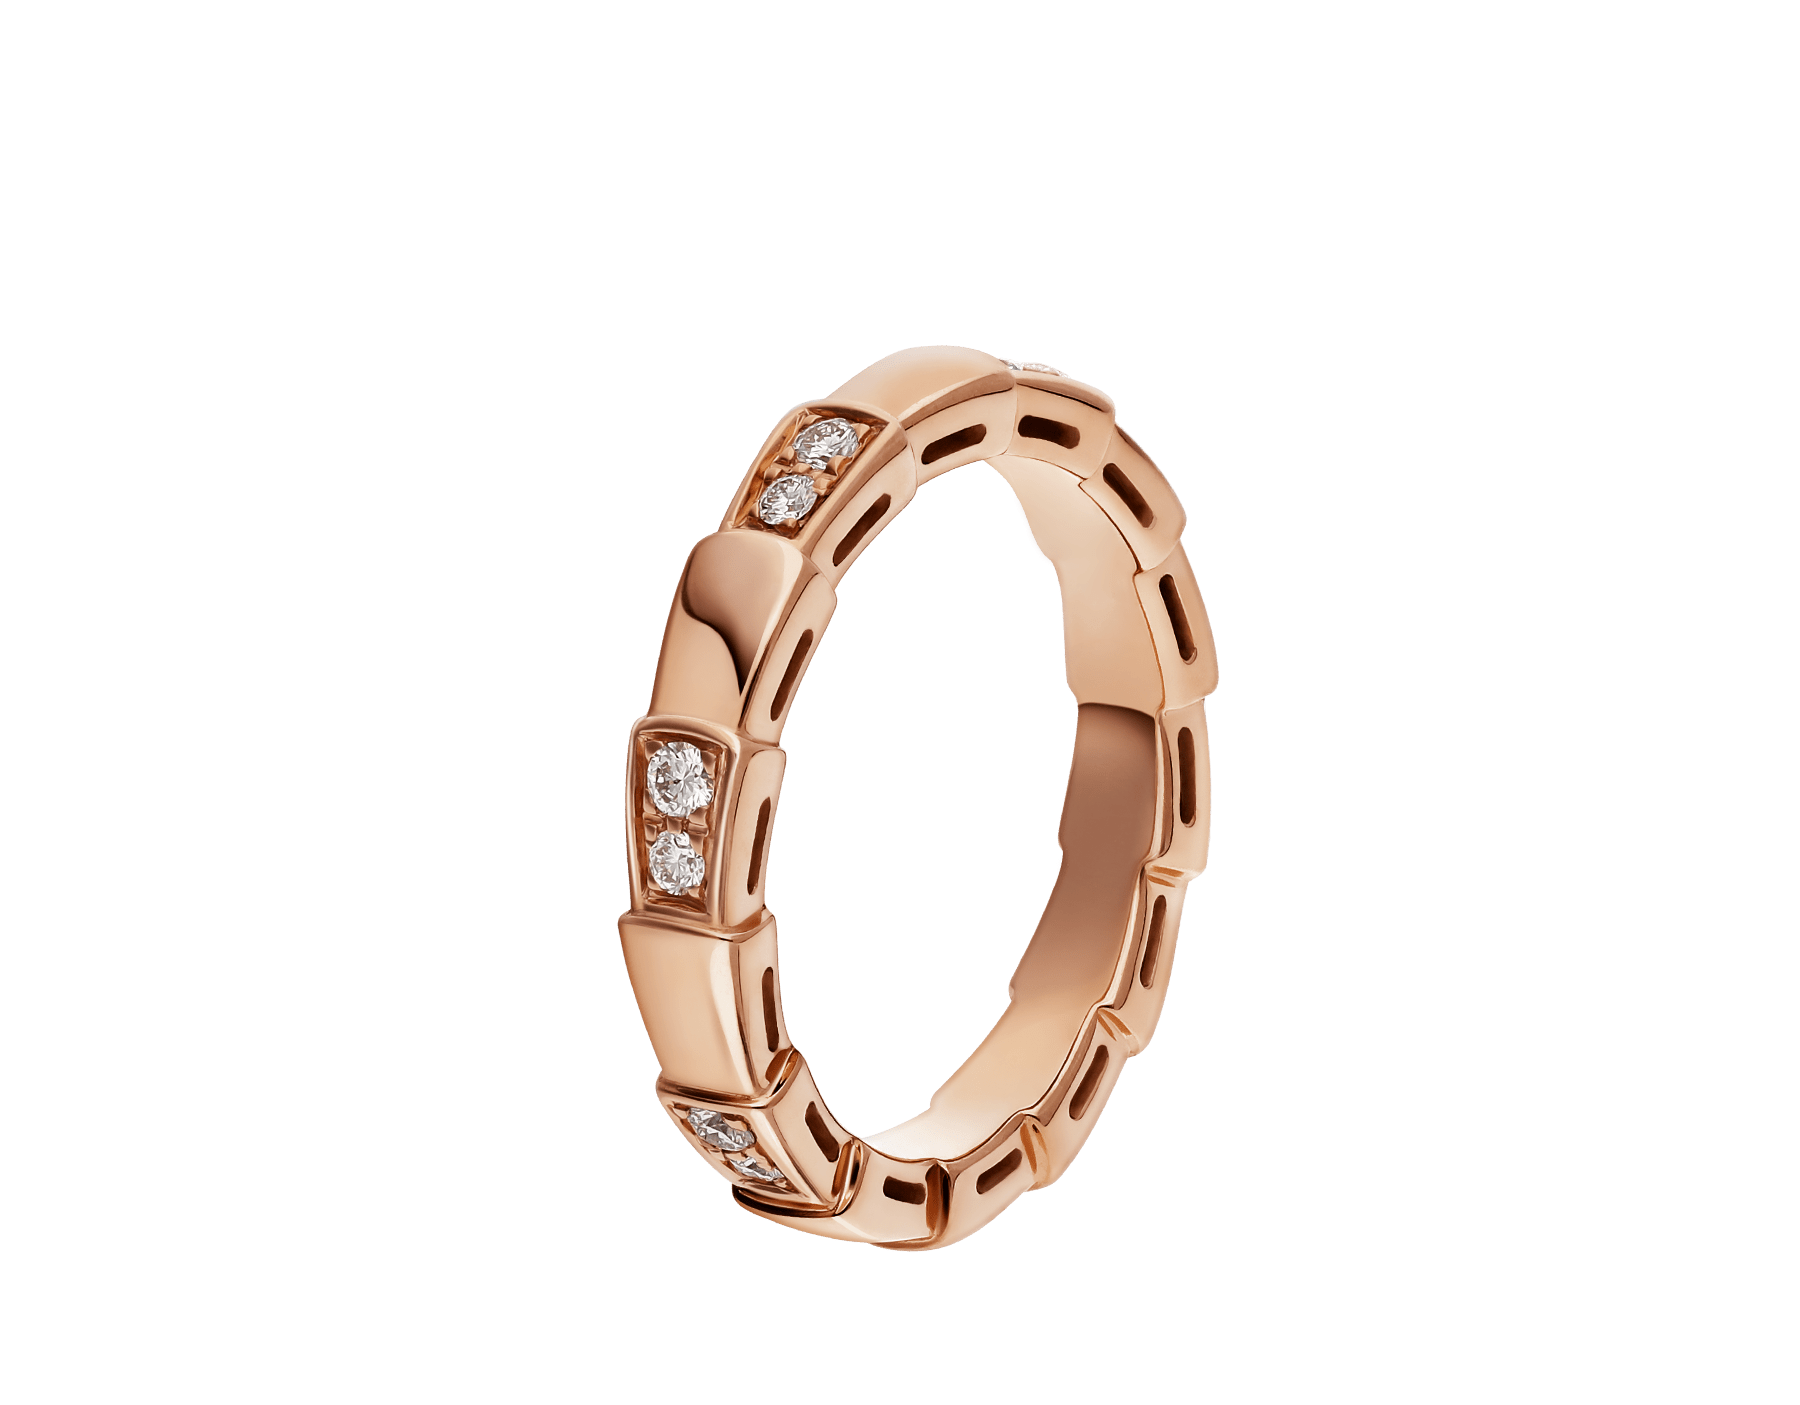 Serpenti Viper band Ring in 18 kt rose gold with half pavé diamonds . Width 4 mm AN857896 image 1